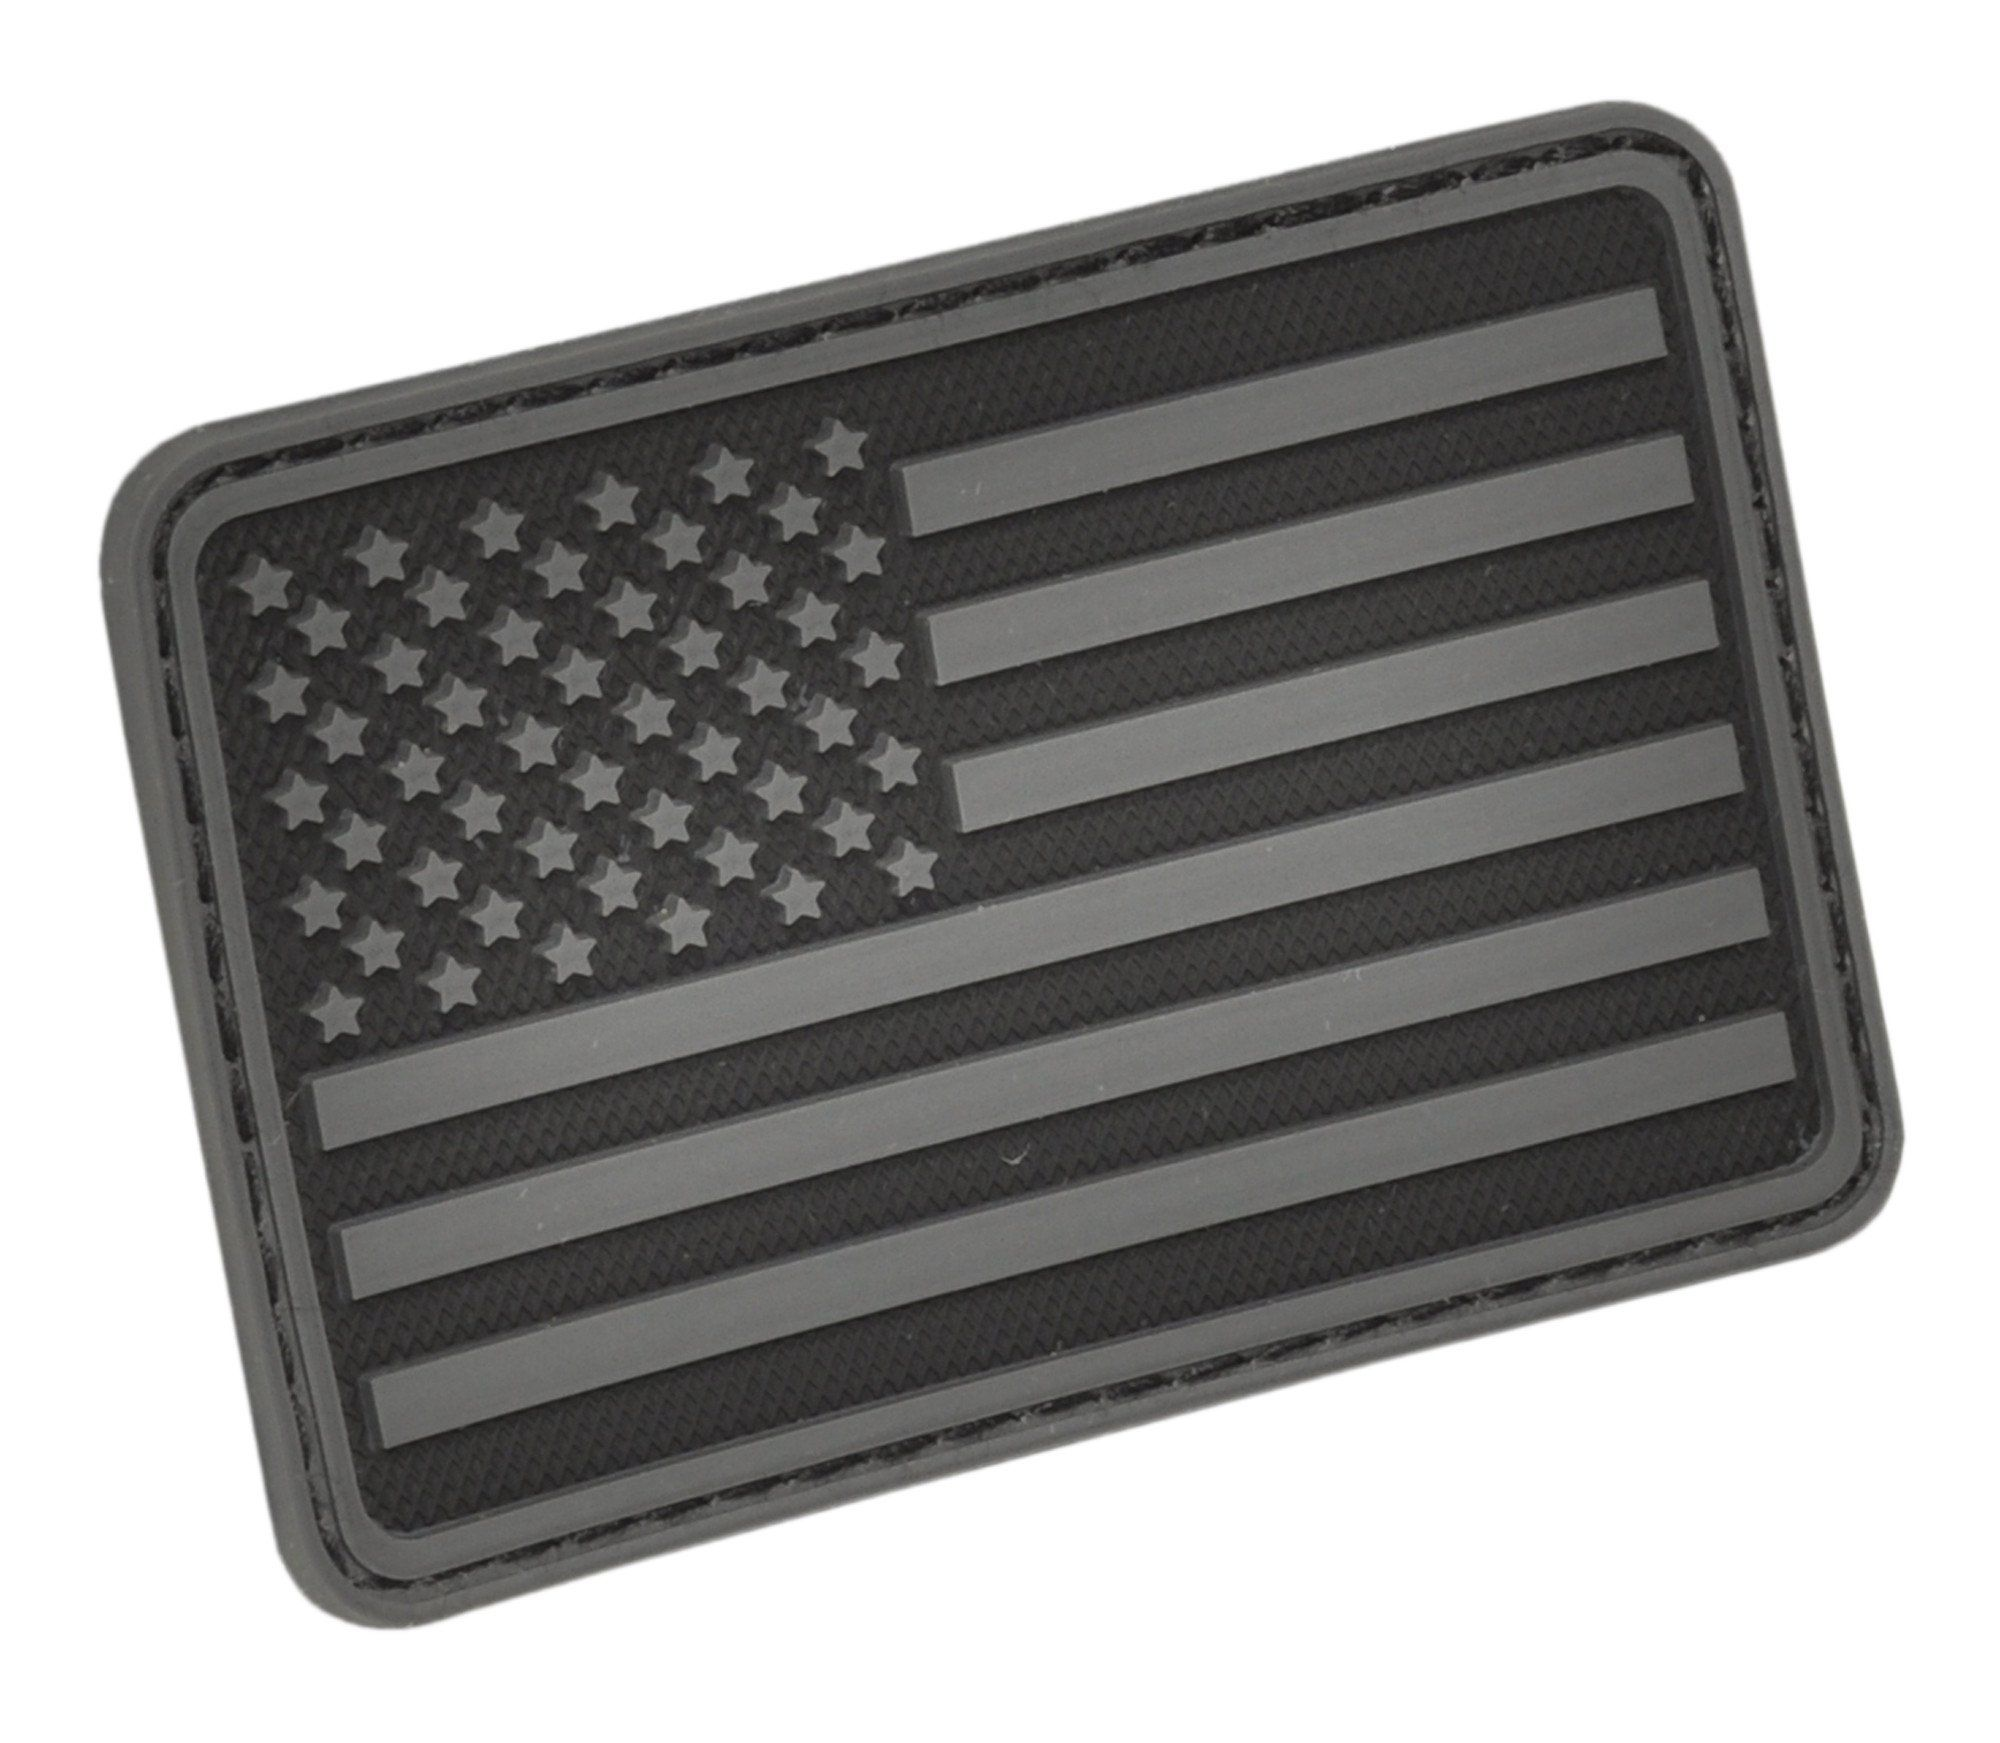 Hazard 4 Usa Flag Left Arm Rubber Patch R Ad Flag Sponsored Usa Hazard Left Patches American Flag Patch Velcro Patches